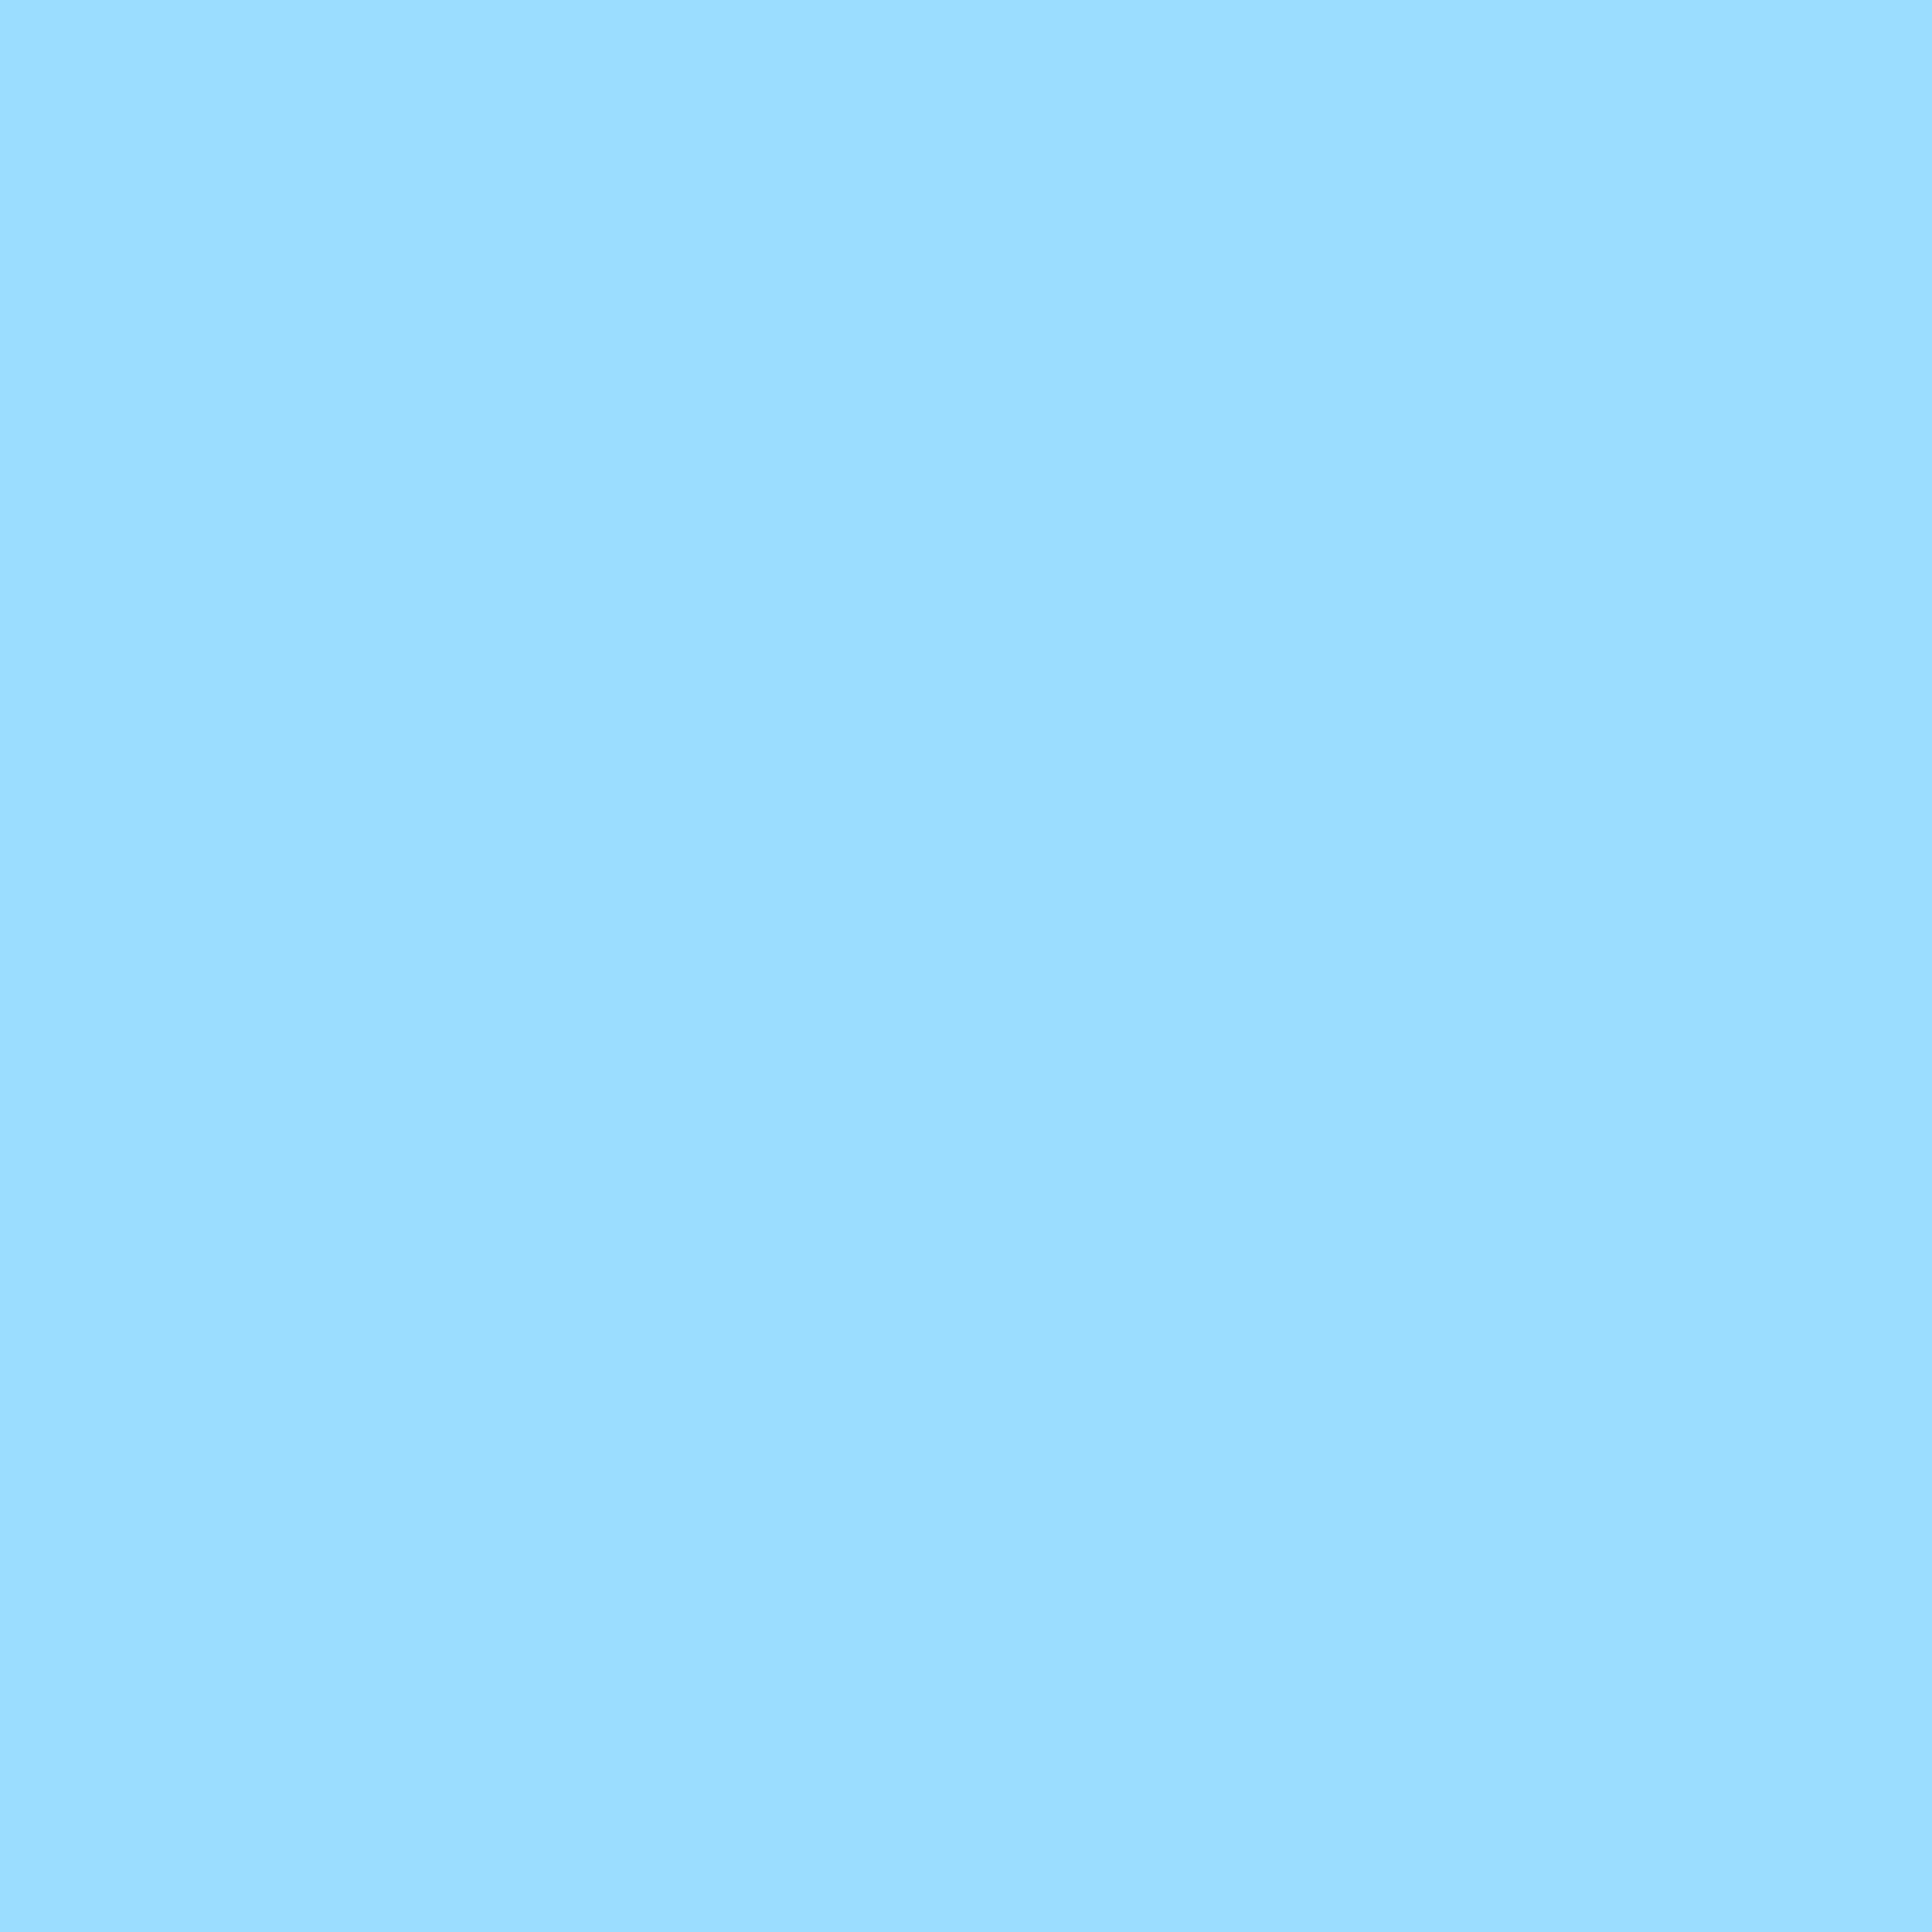 2048x2048 Columbia Blue Solid Color Background